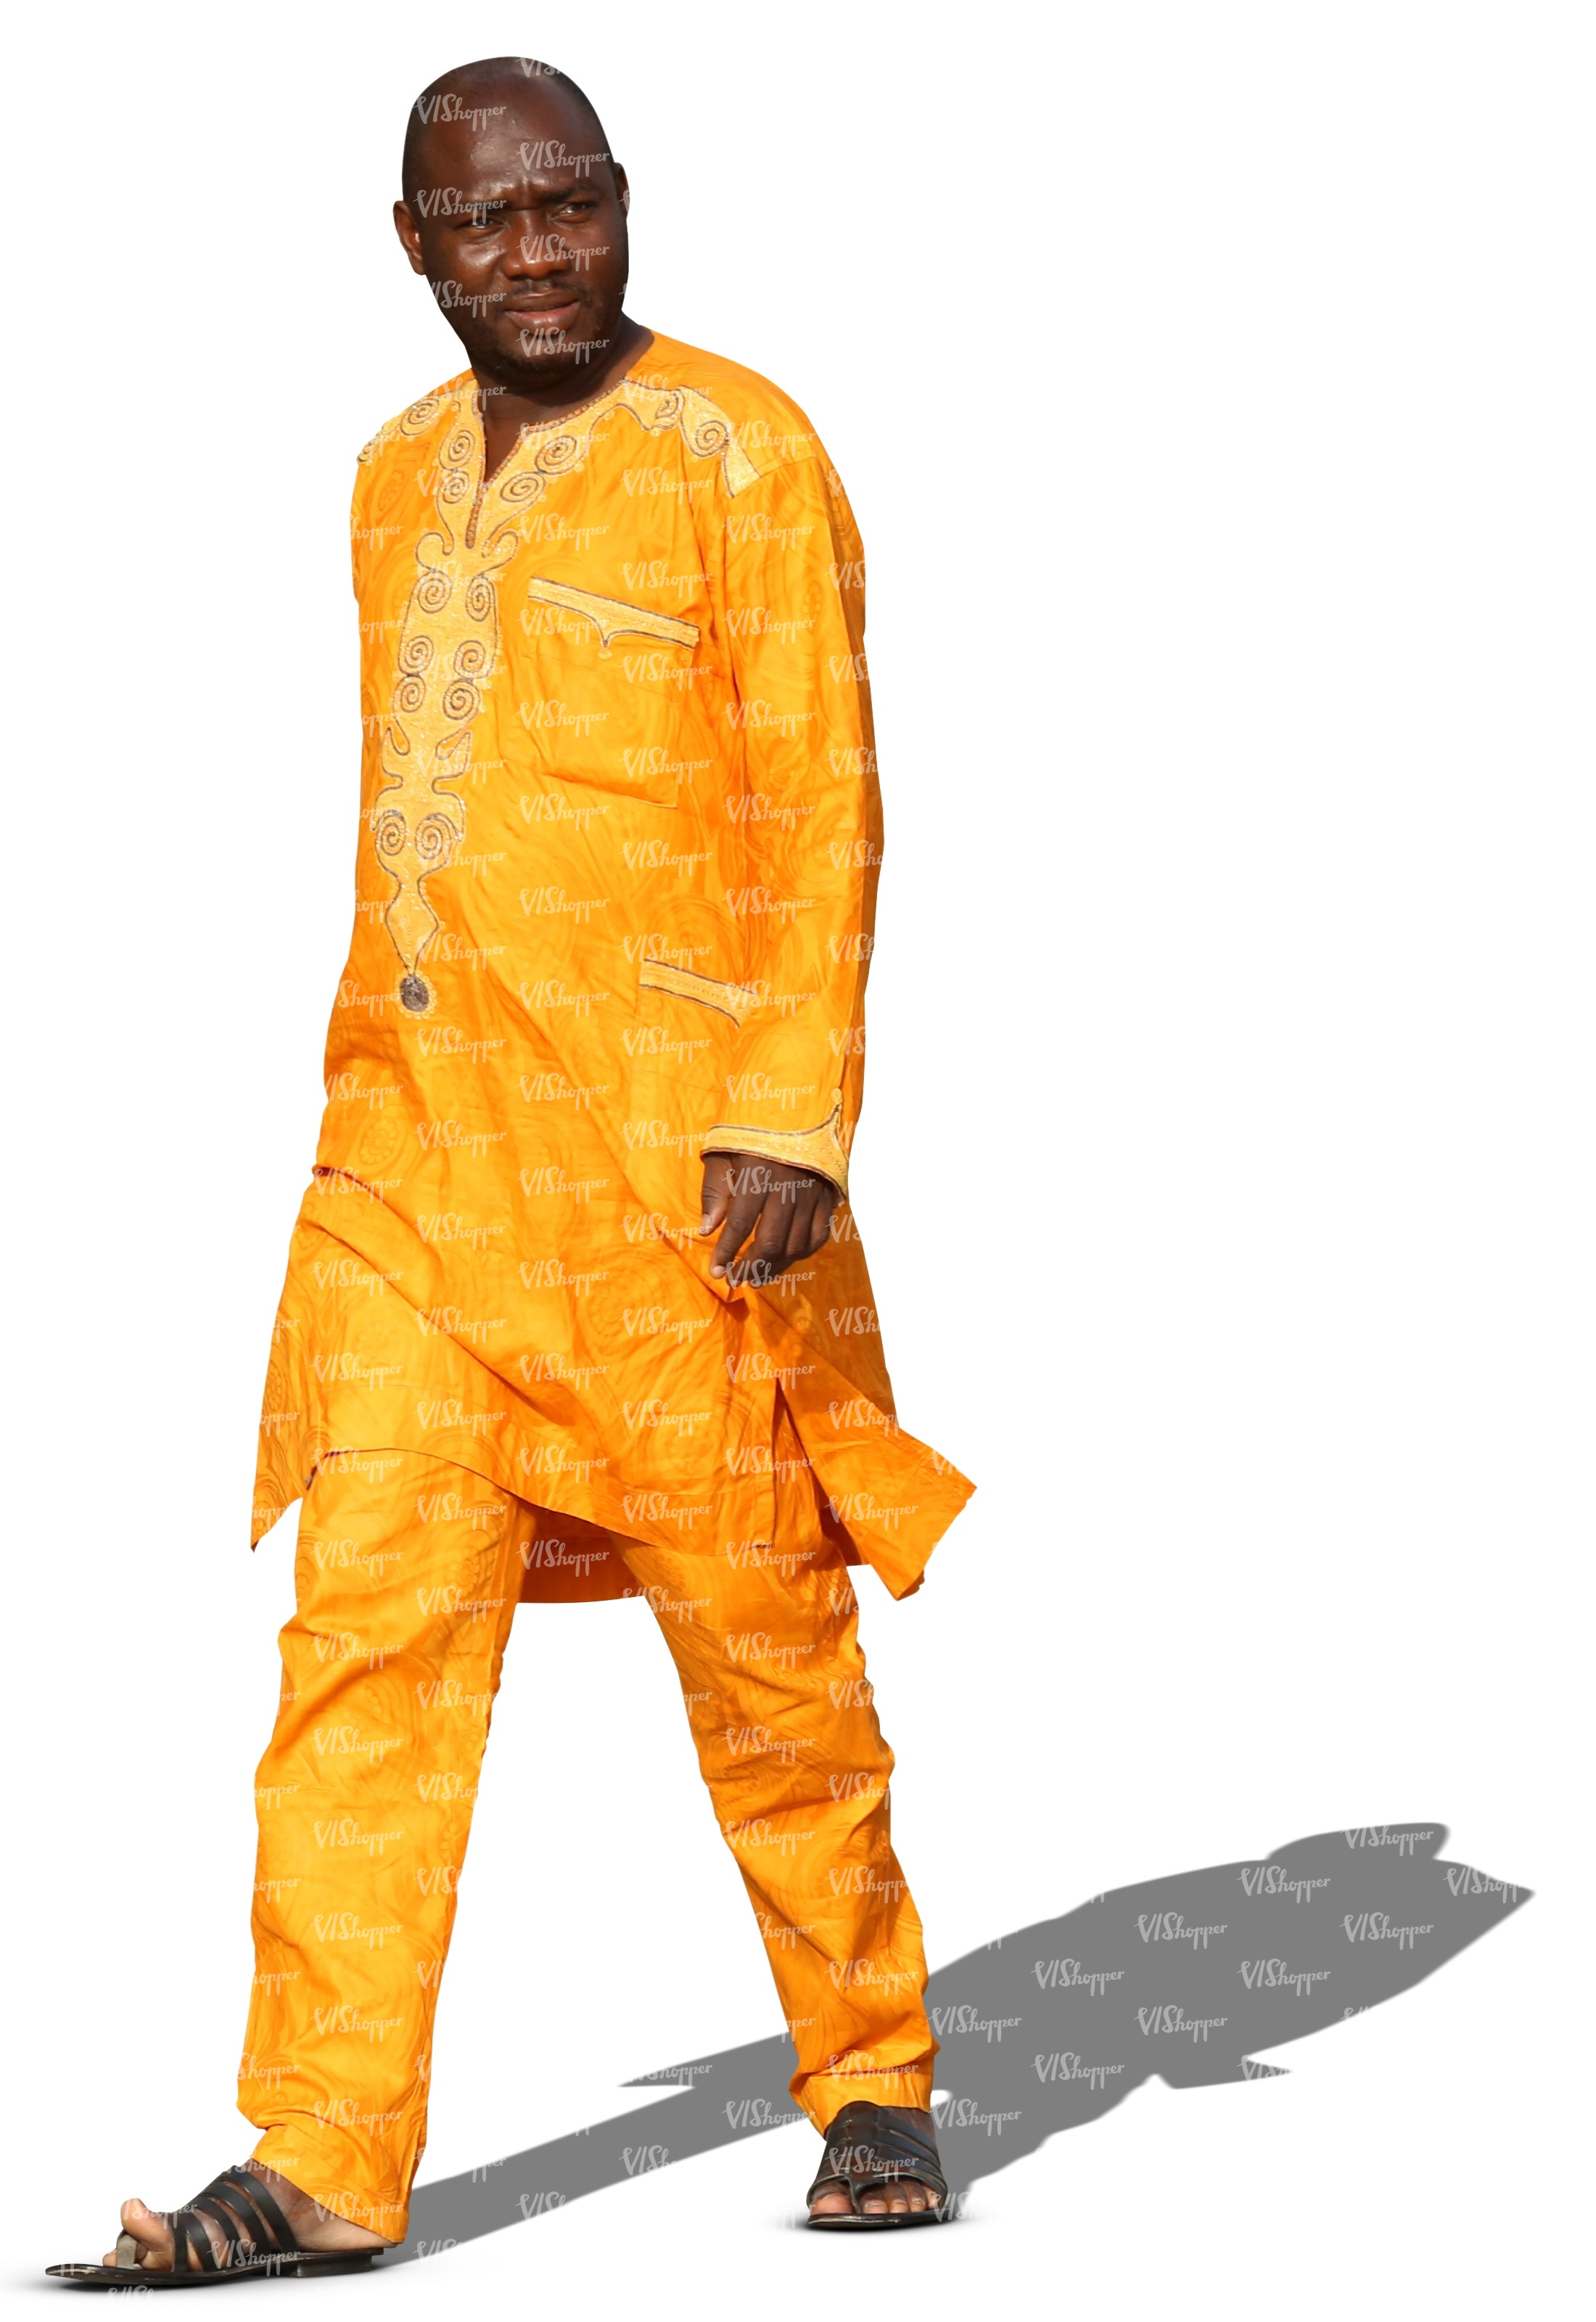 Cut Out Black Man Ethnic Clothes Walking